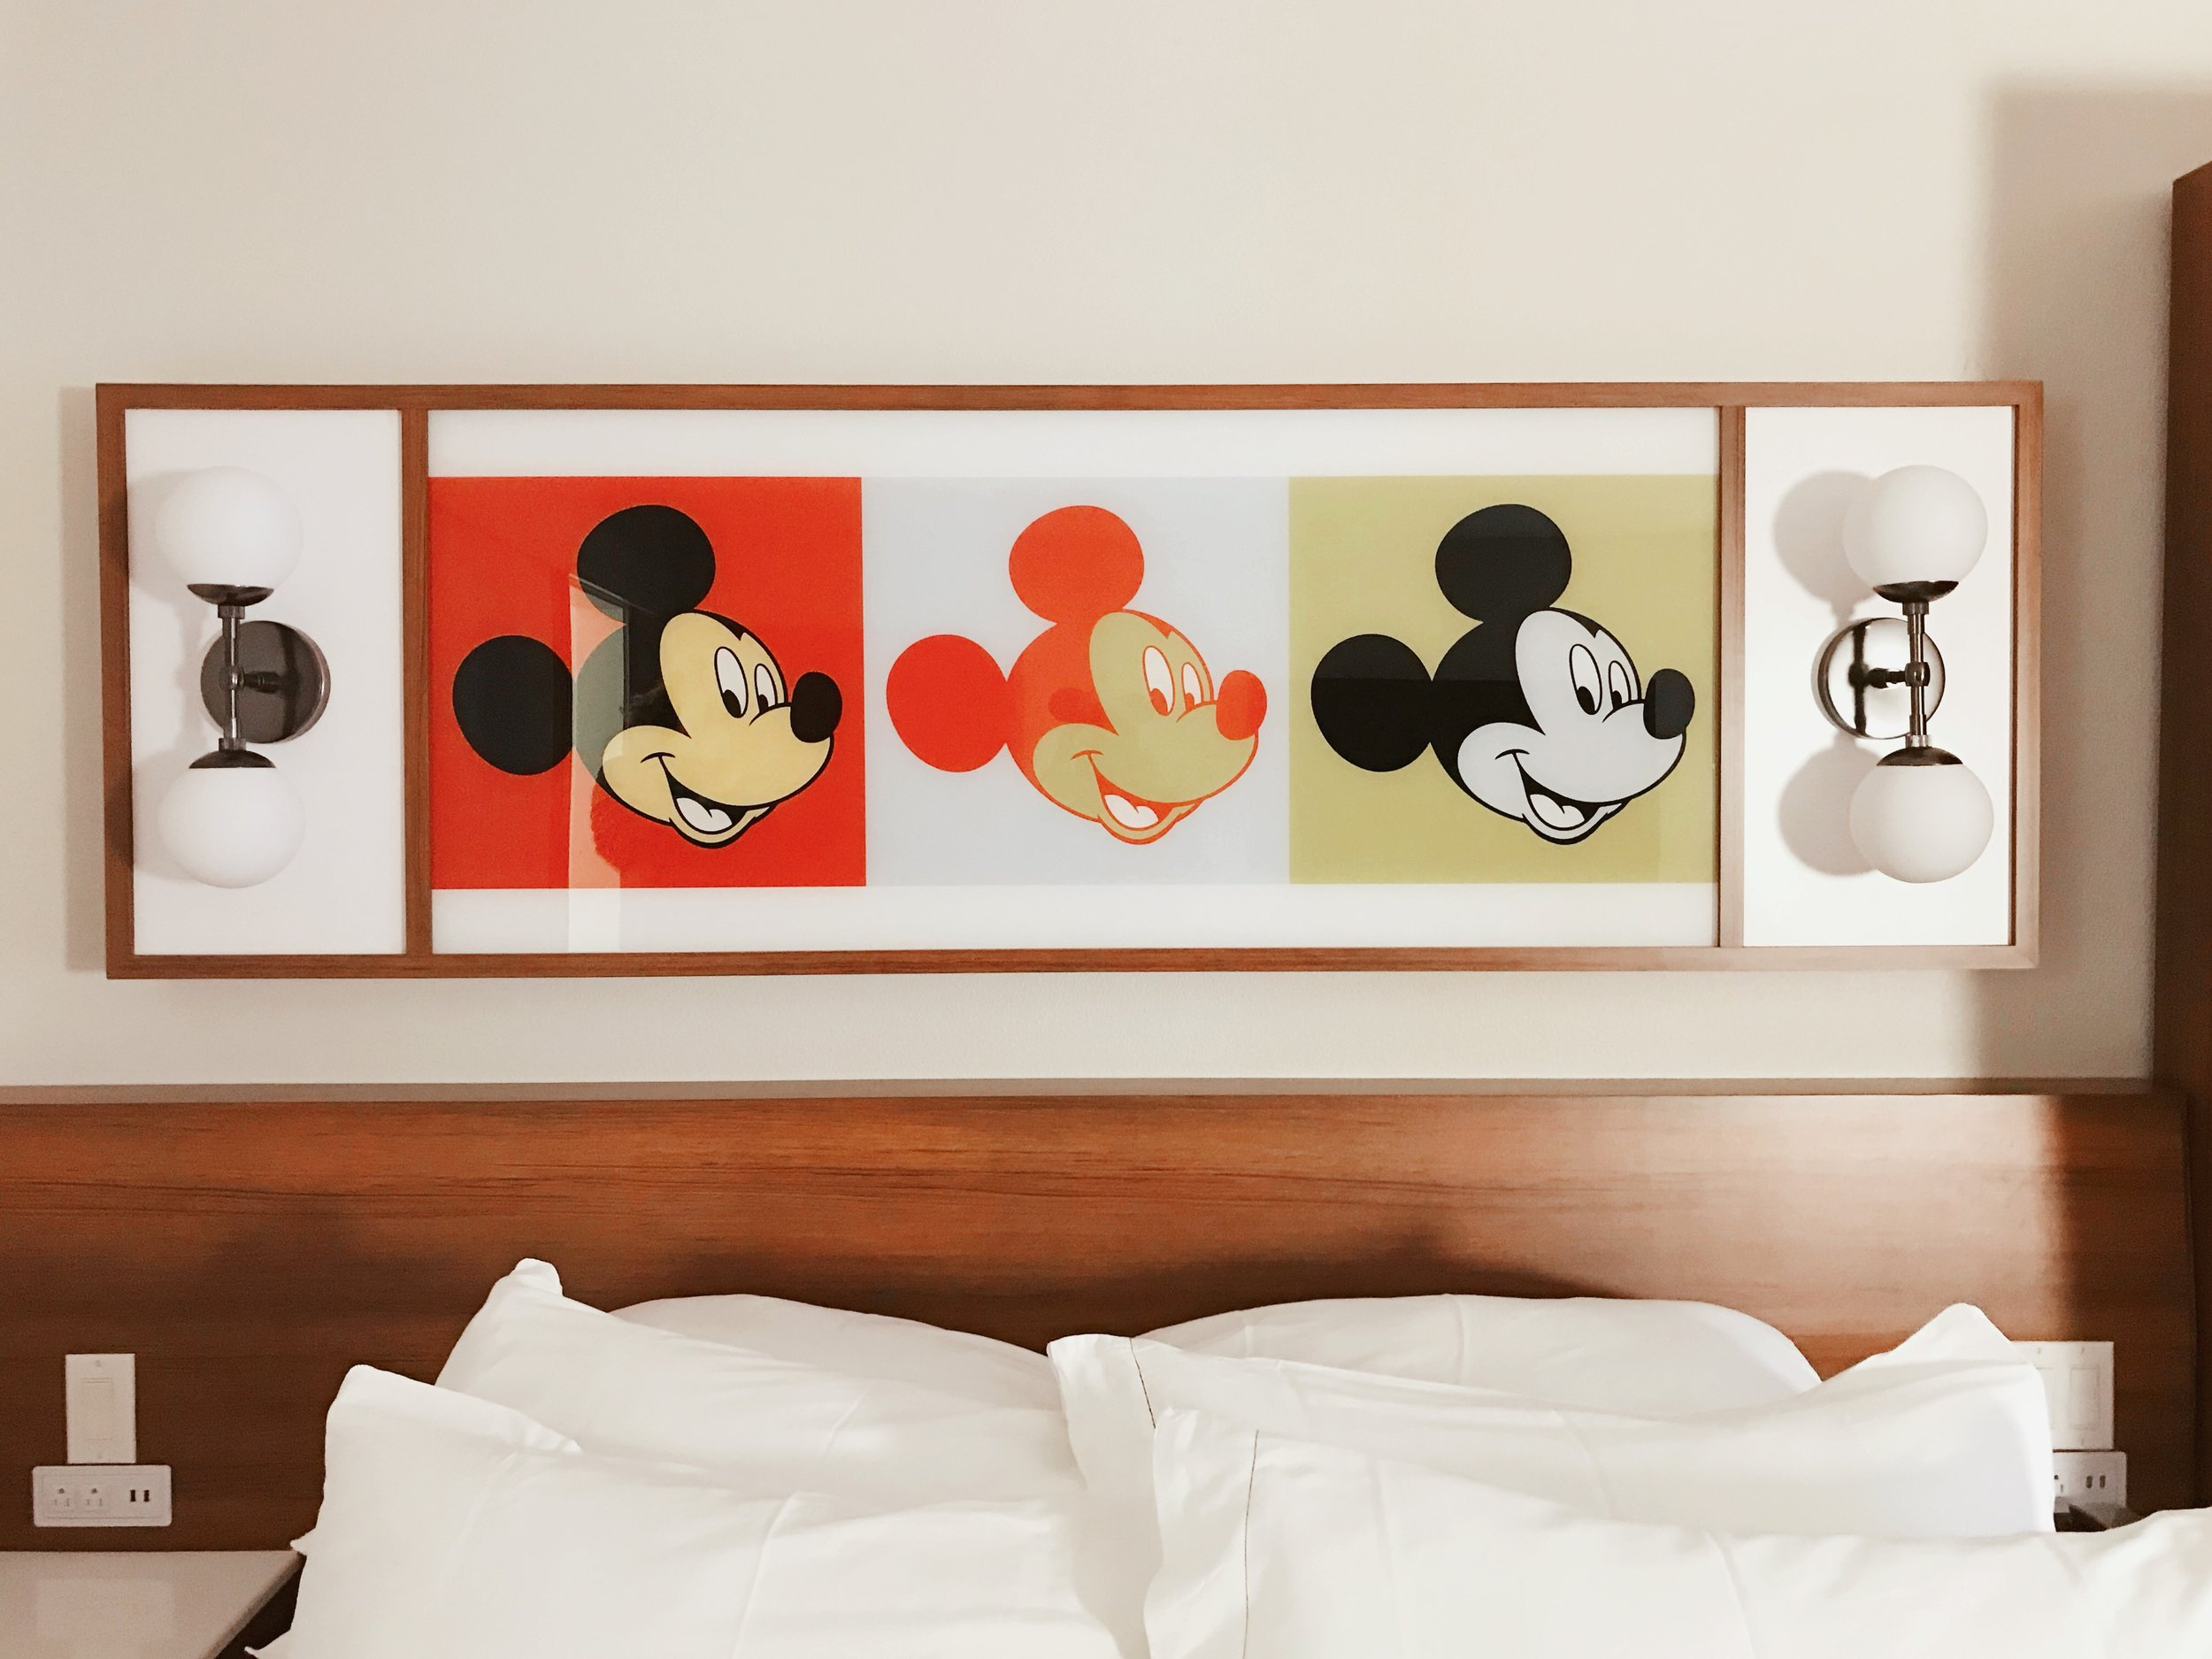 save up to 25% on rooms at select disney resort hotels - * valid most nights May 28 - August 28, 2019* offer excludes 3-bedroom villas, Cabins at Copper Creek, campsites at Fort Wilderness, Bungalows at Polynesian Village